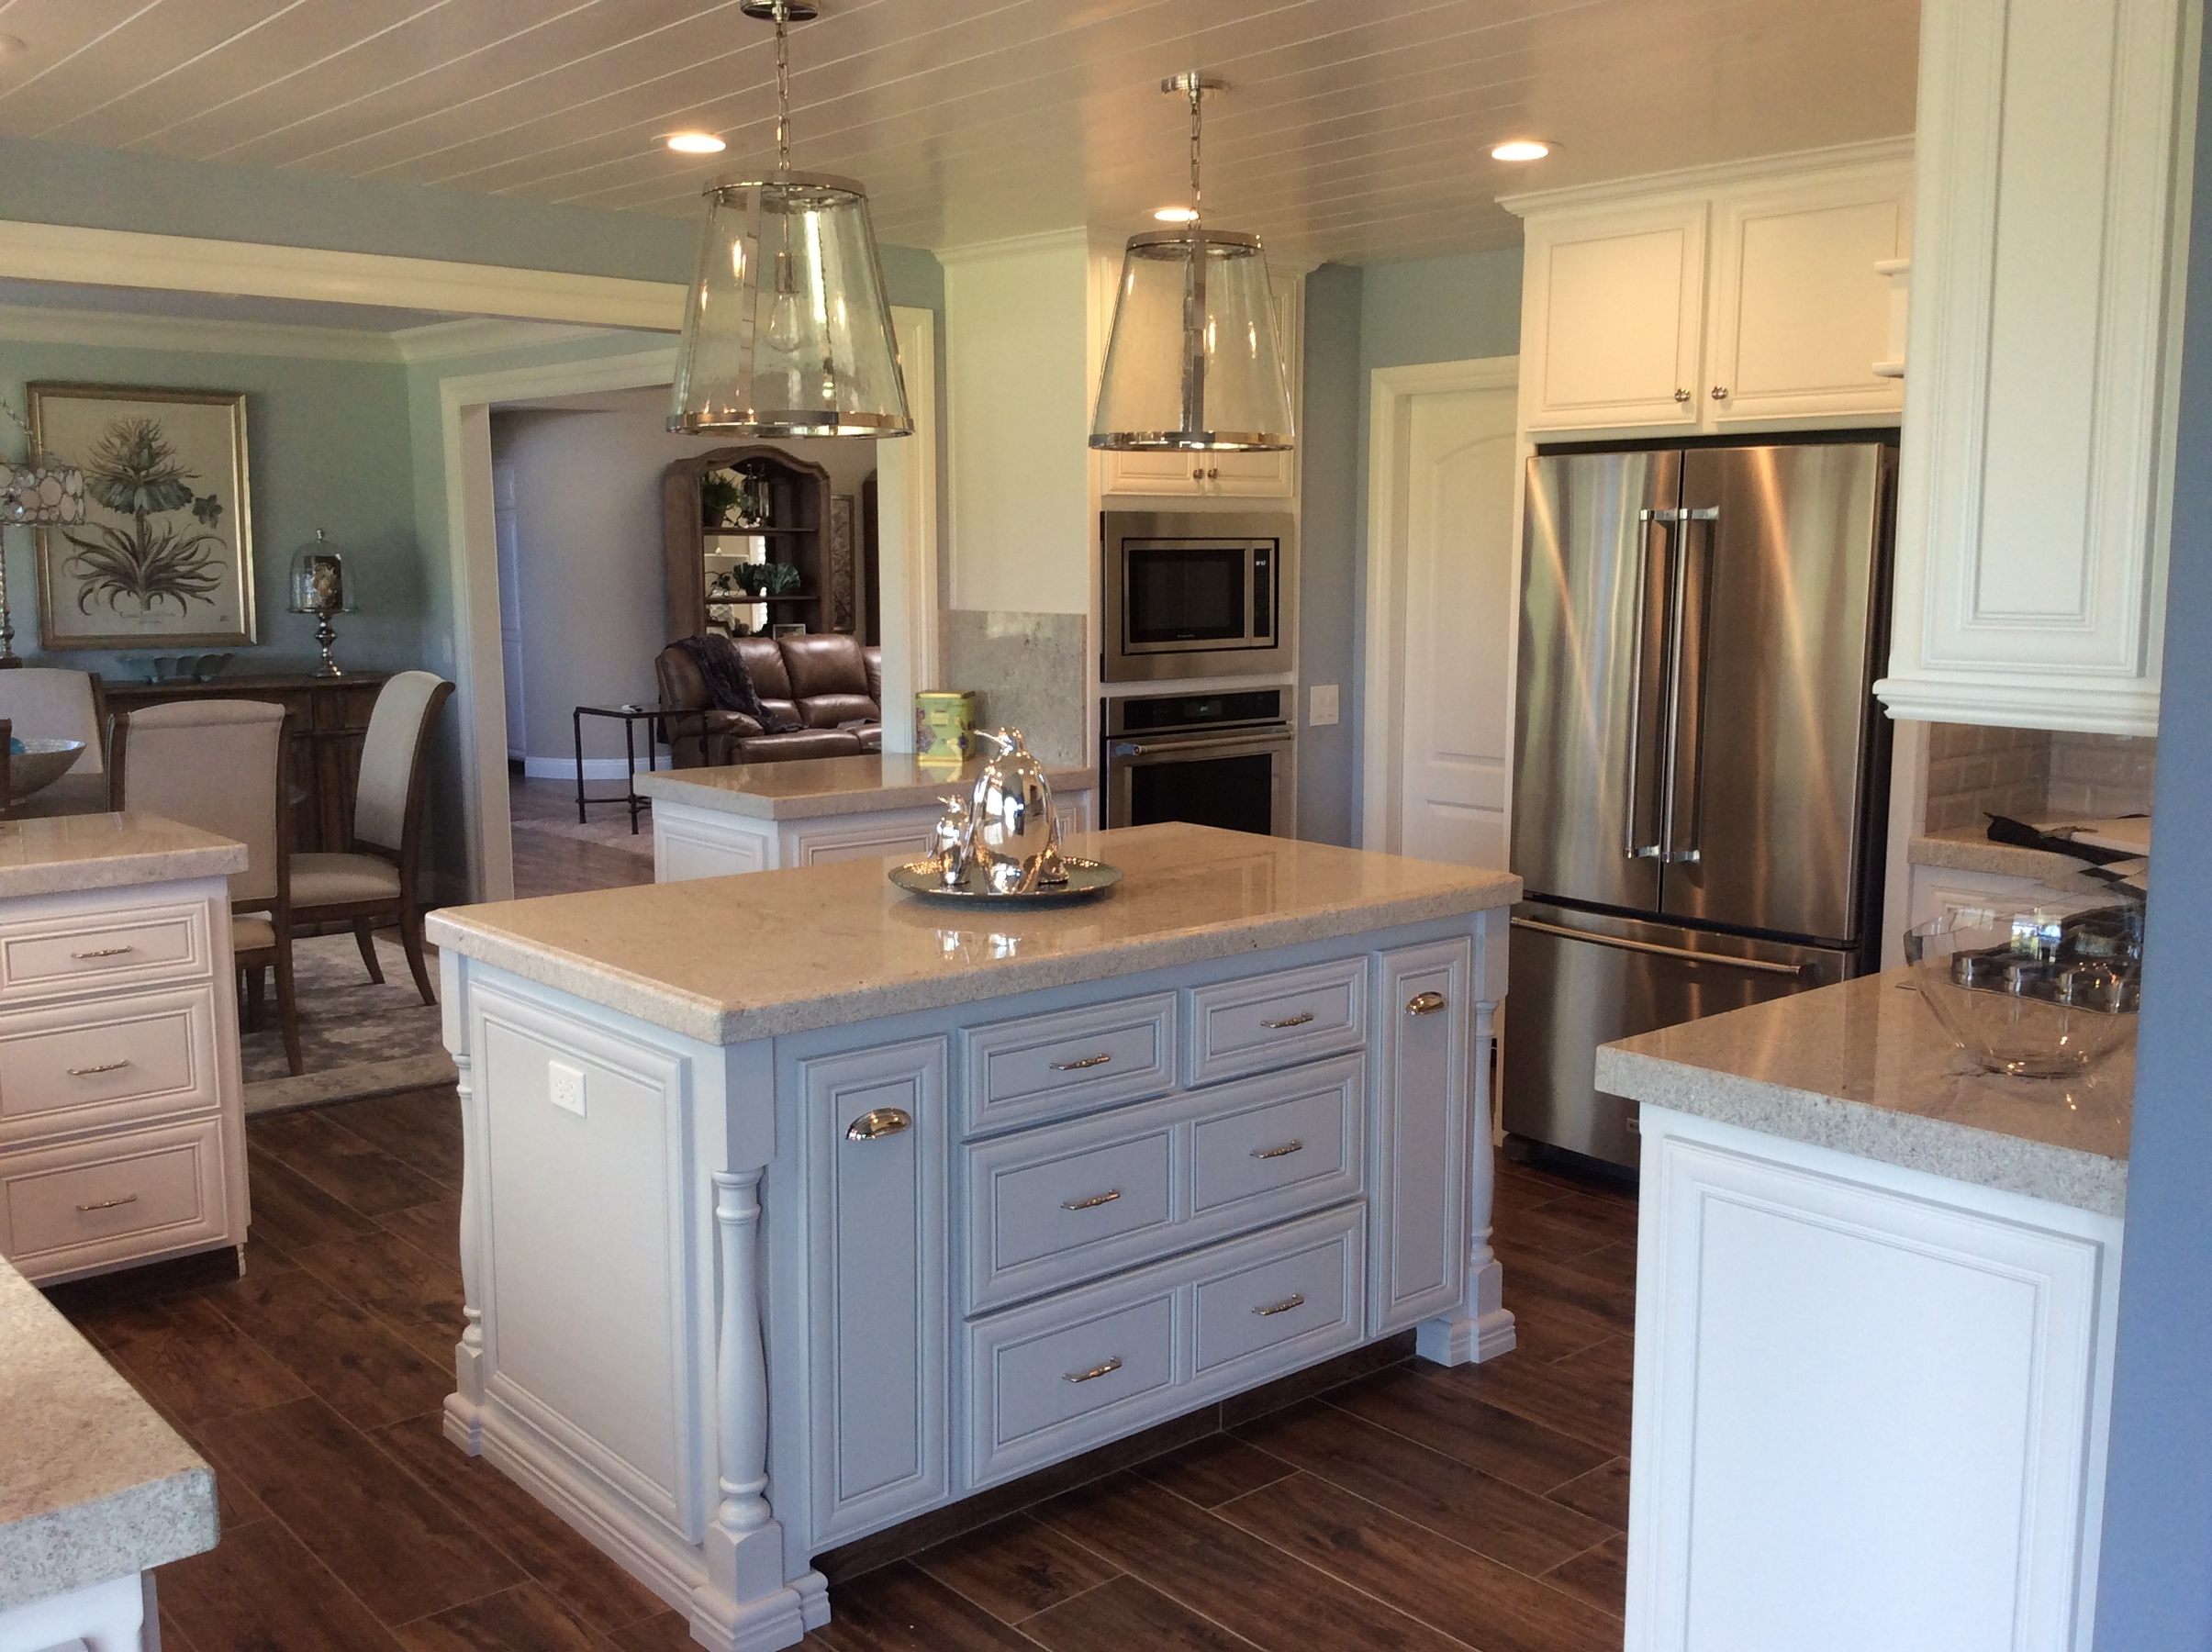 Complete Interior Painting in Nipomo - And Don't Miss These Cabinets!